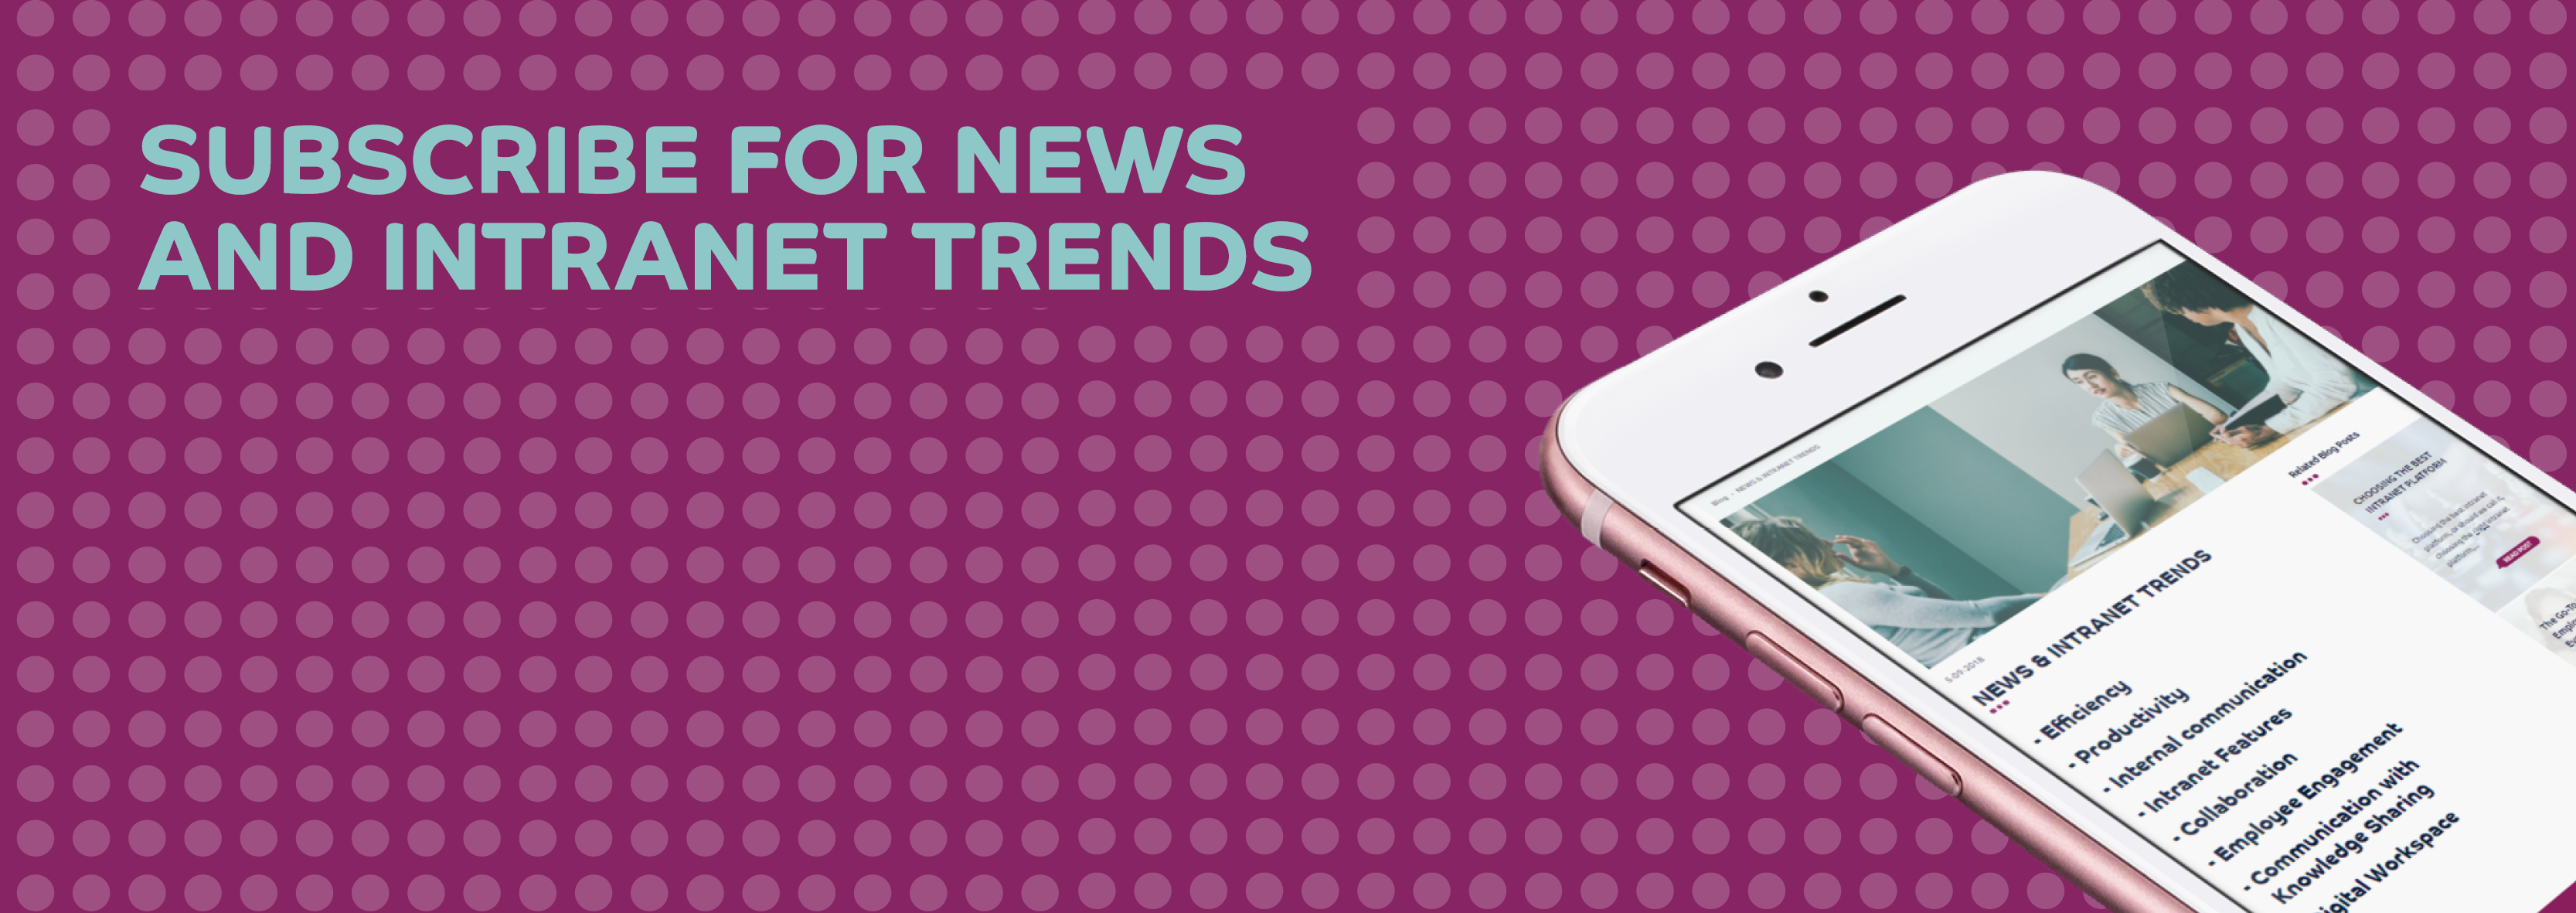 Subscribe for news & intranet trends